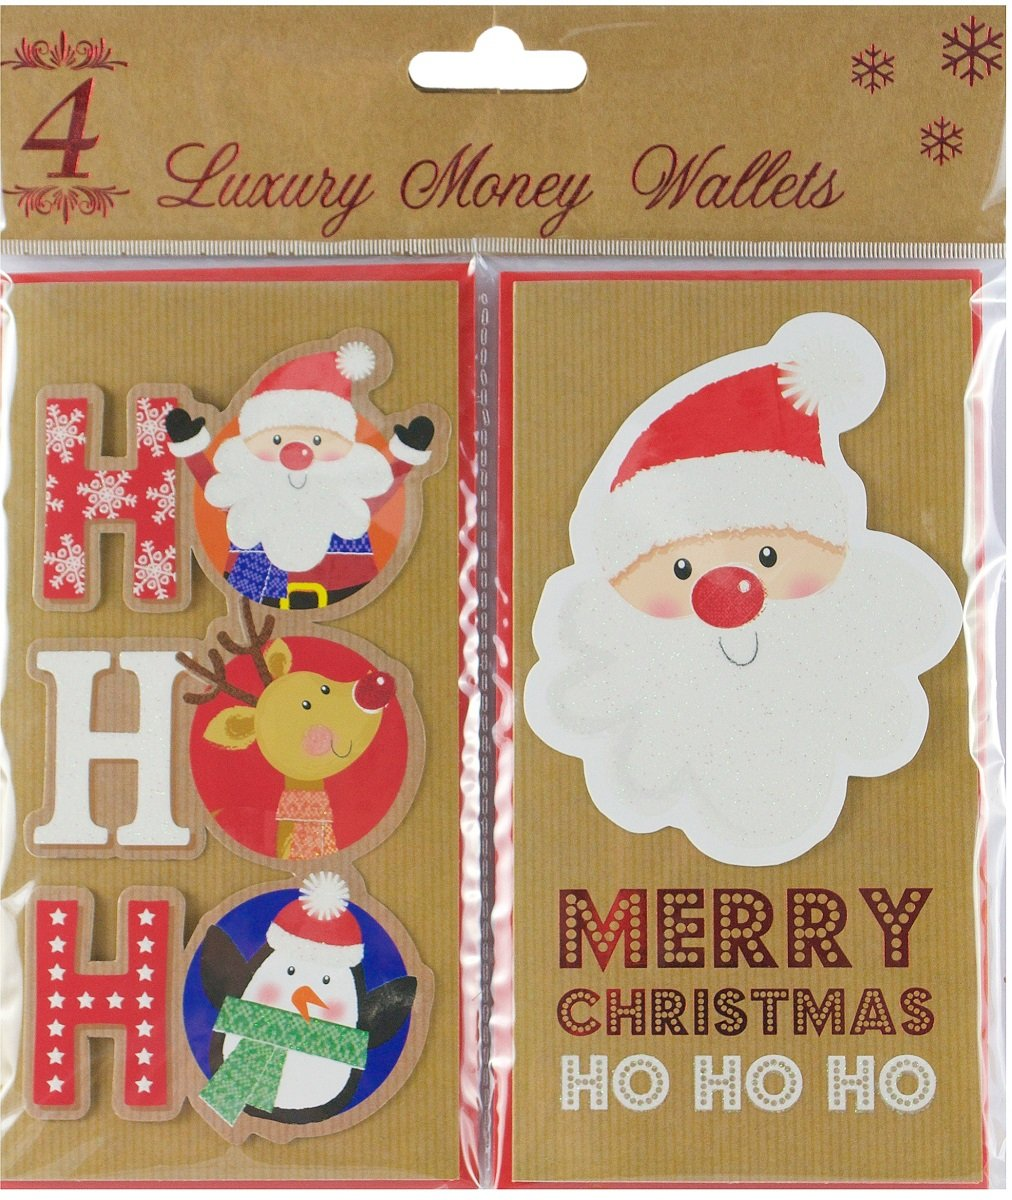 4 x Contemporary Christmas Money Wallets Cards 17.5cm x 9cm With Envelopes